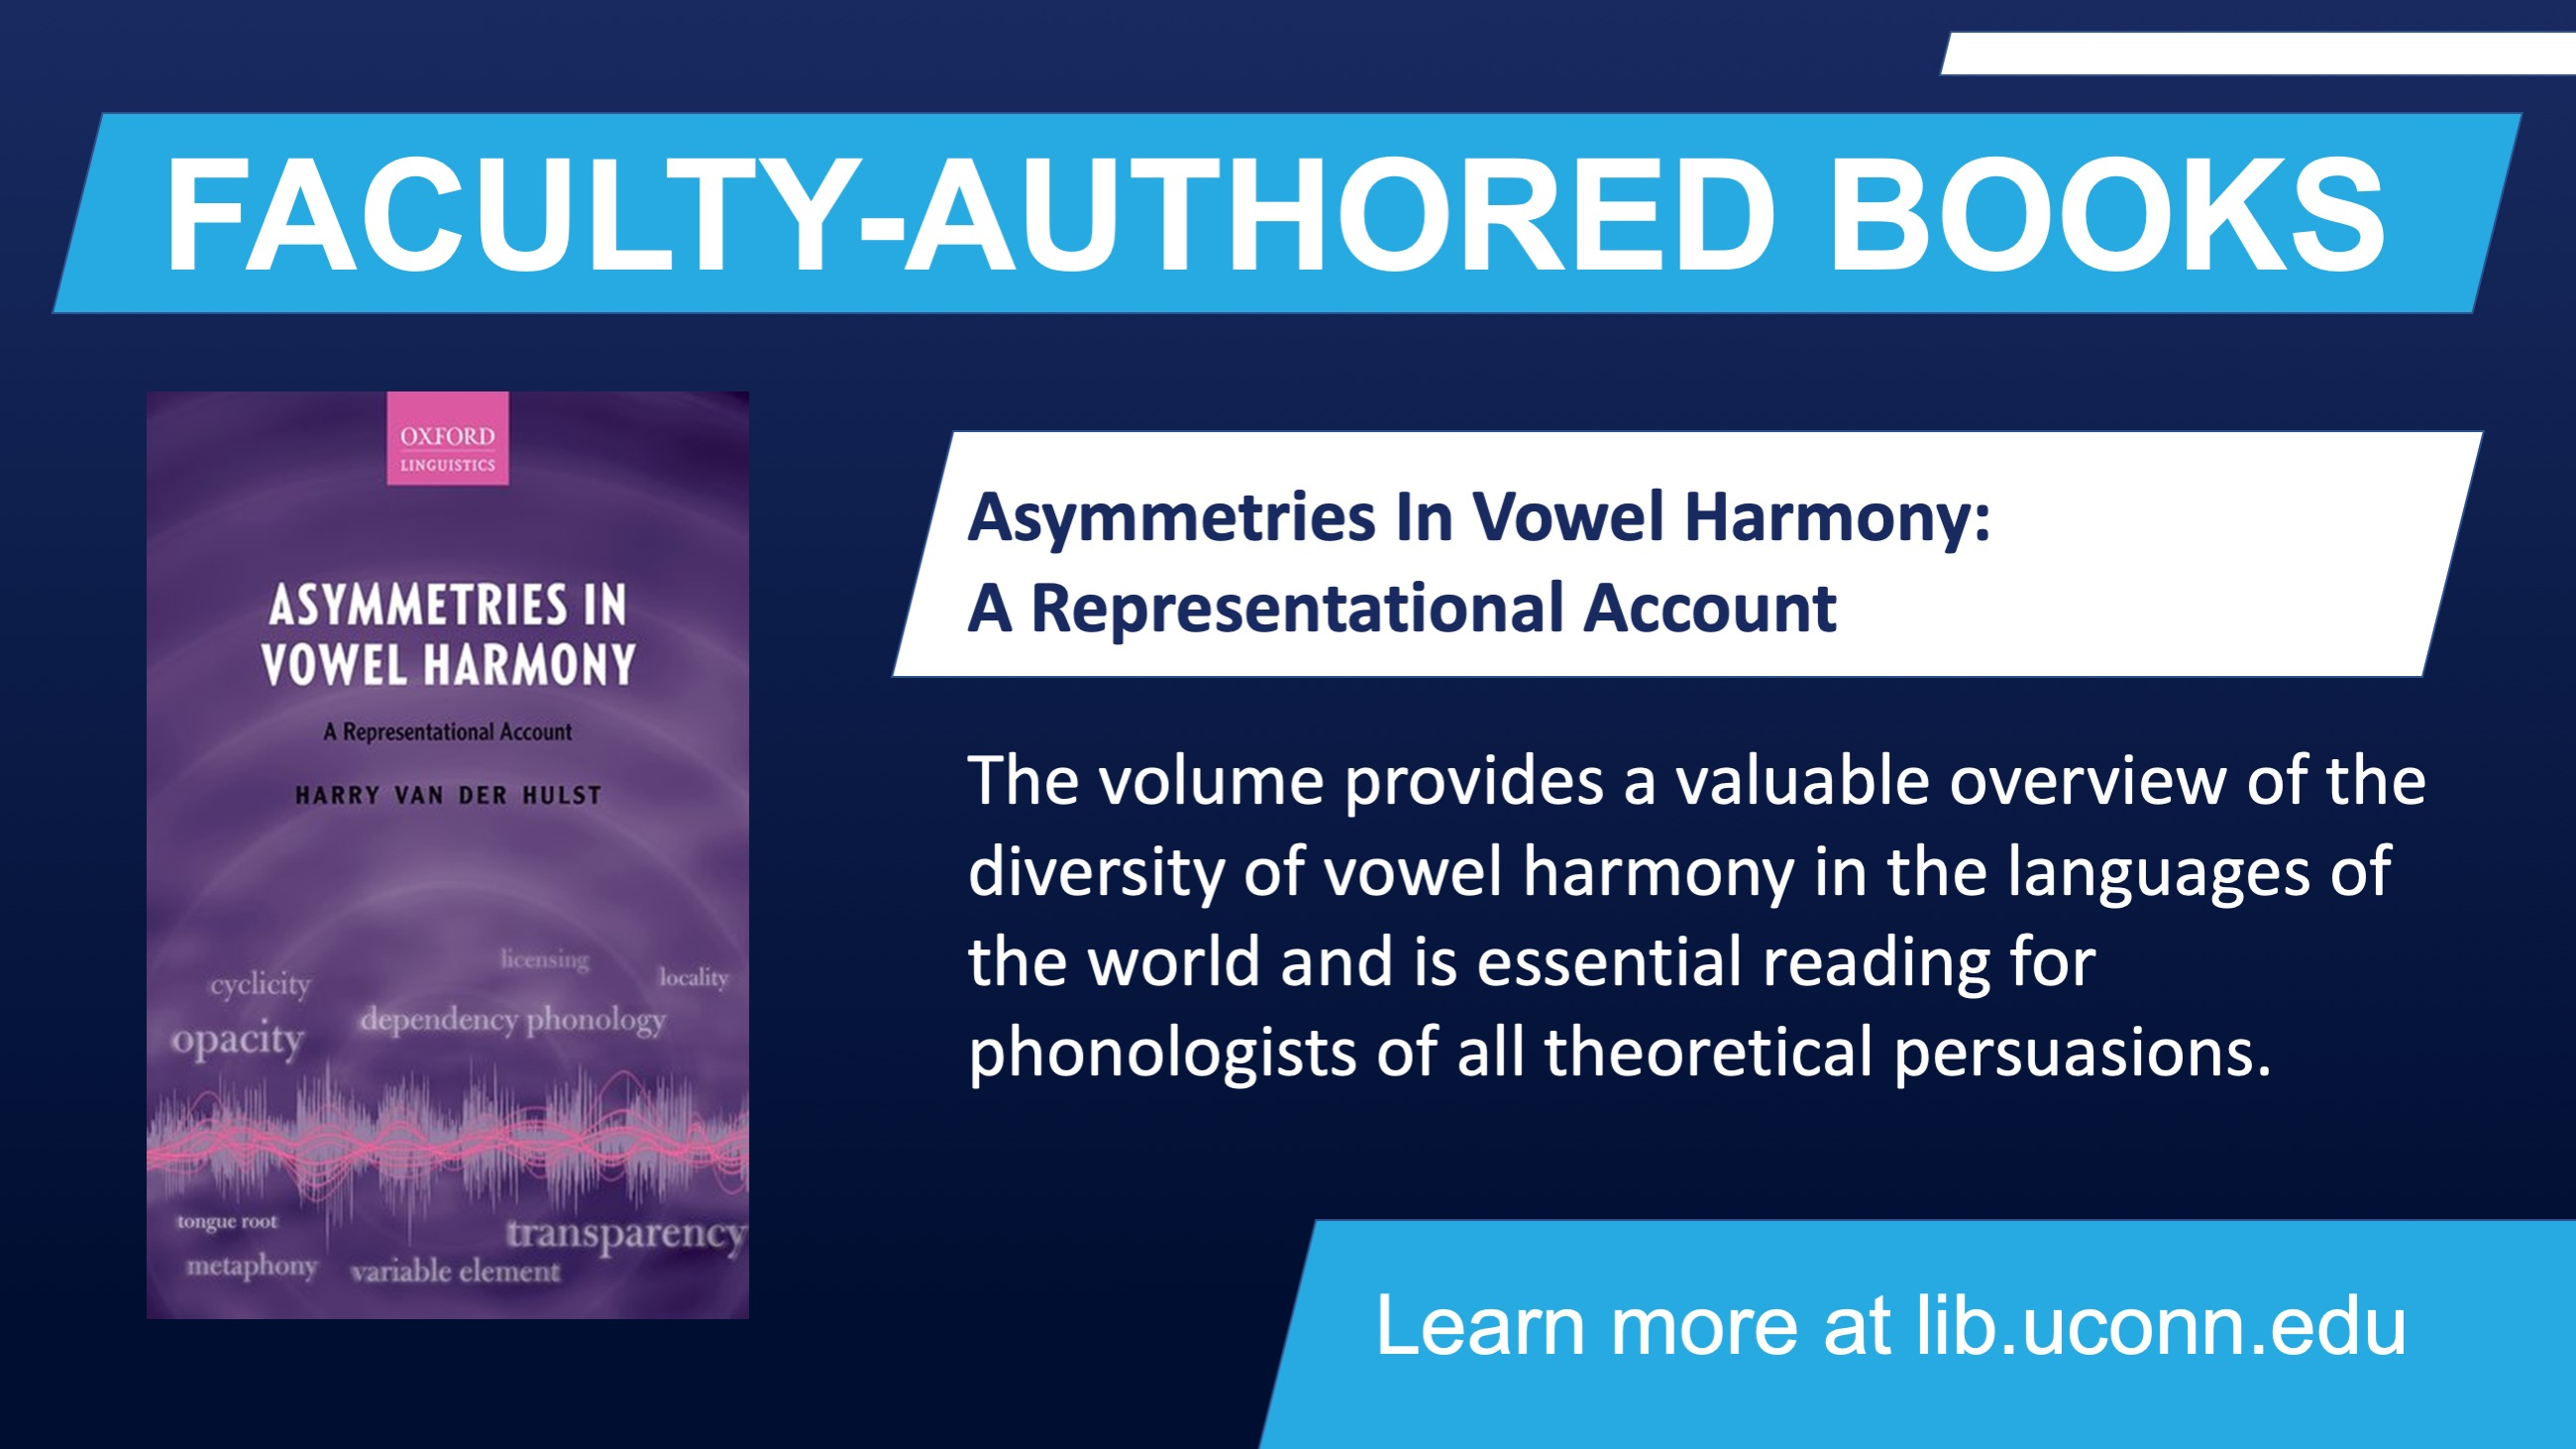 FACULTY-AUTHORED BOOKS Asymmetries In Vowel Harmony: A Representational Account The volume provides a valuable overview of the diversity of vowel harmony in the languages of the world and is essential reading for phonologists of all theoretical persuasions. Learn more at lib.uconn.edu